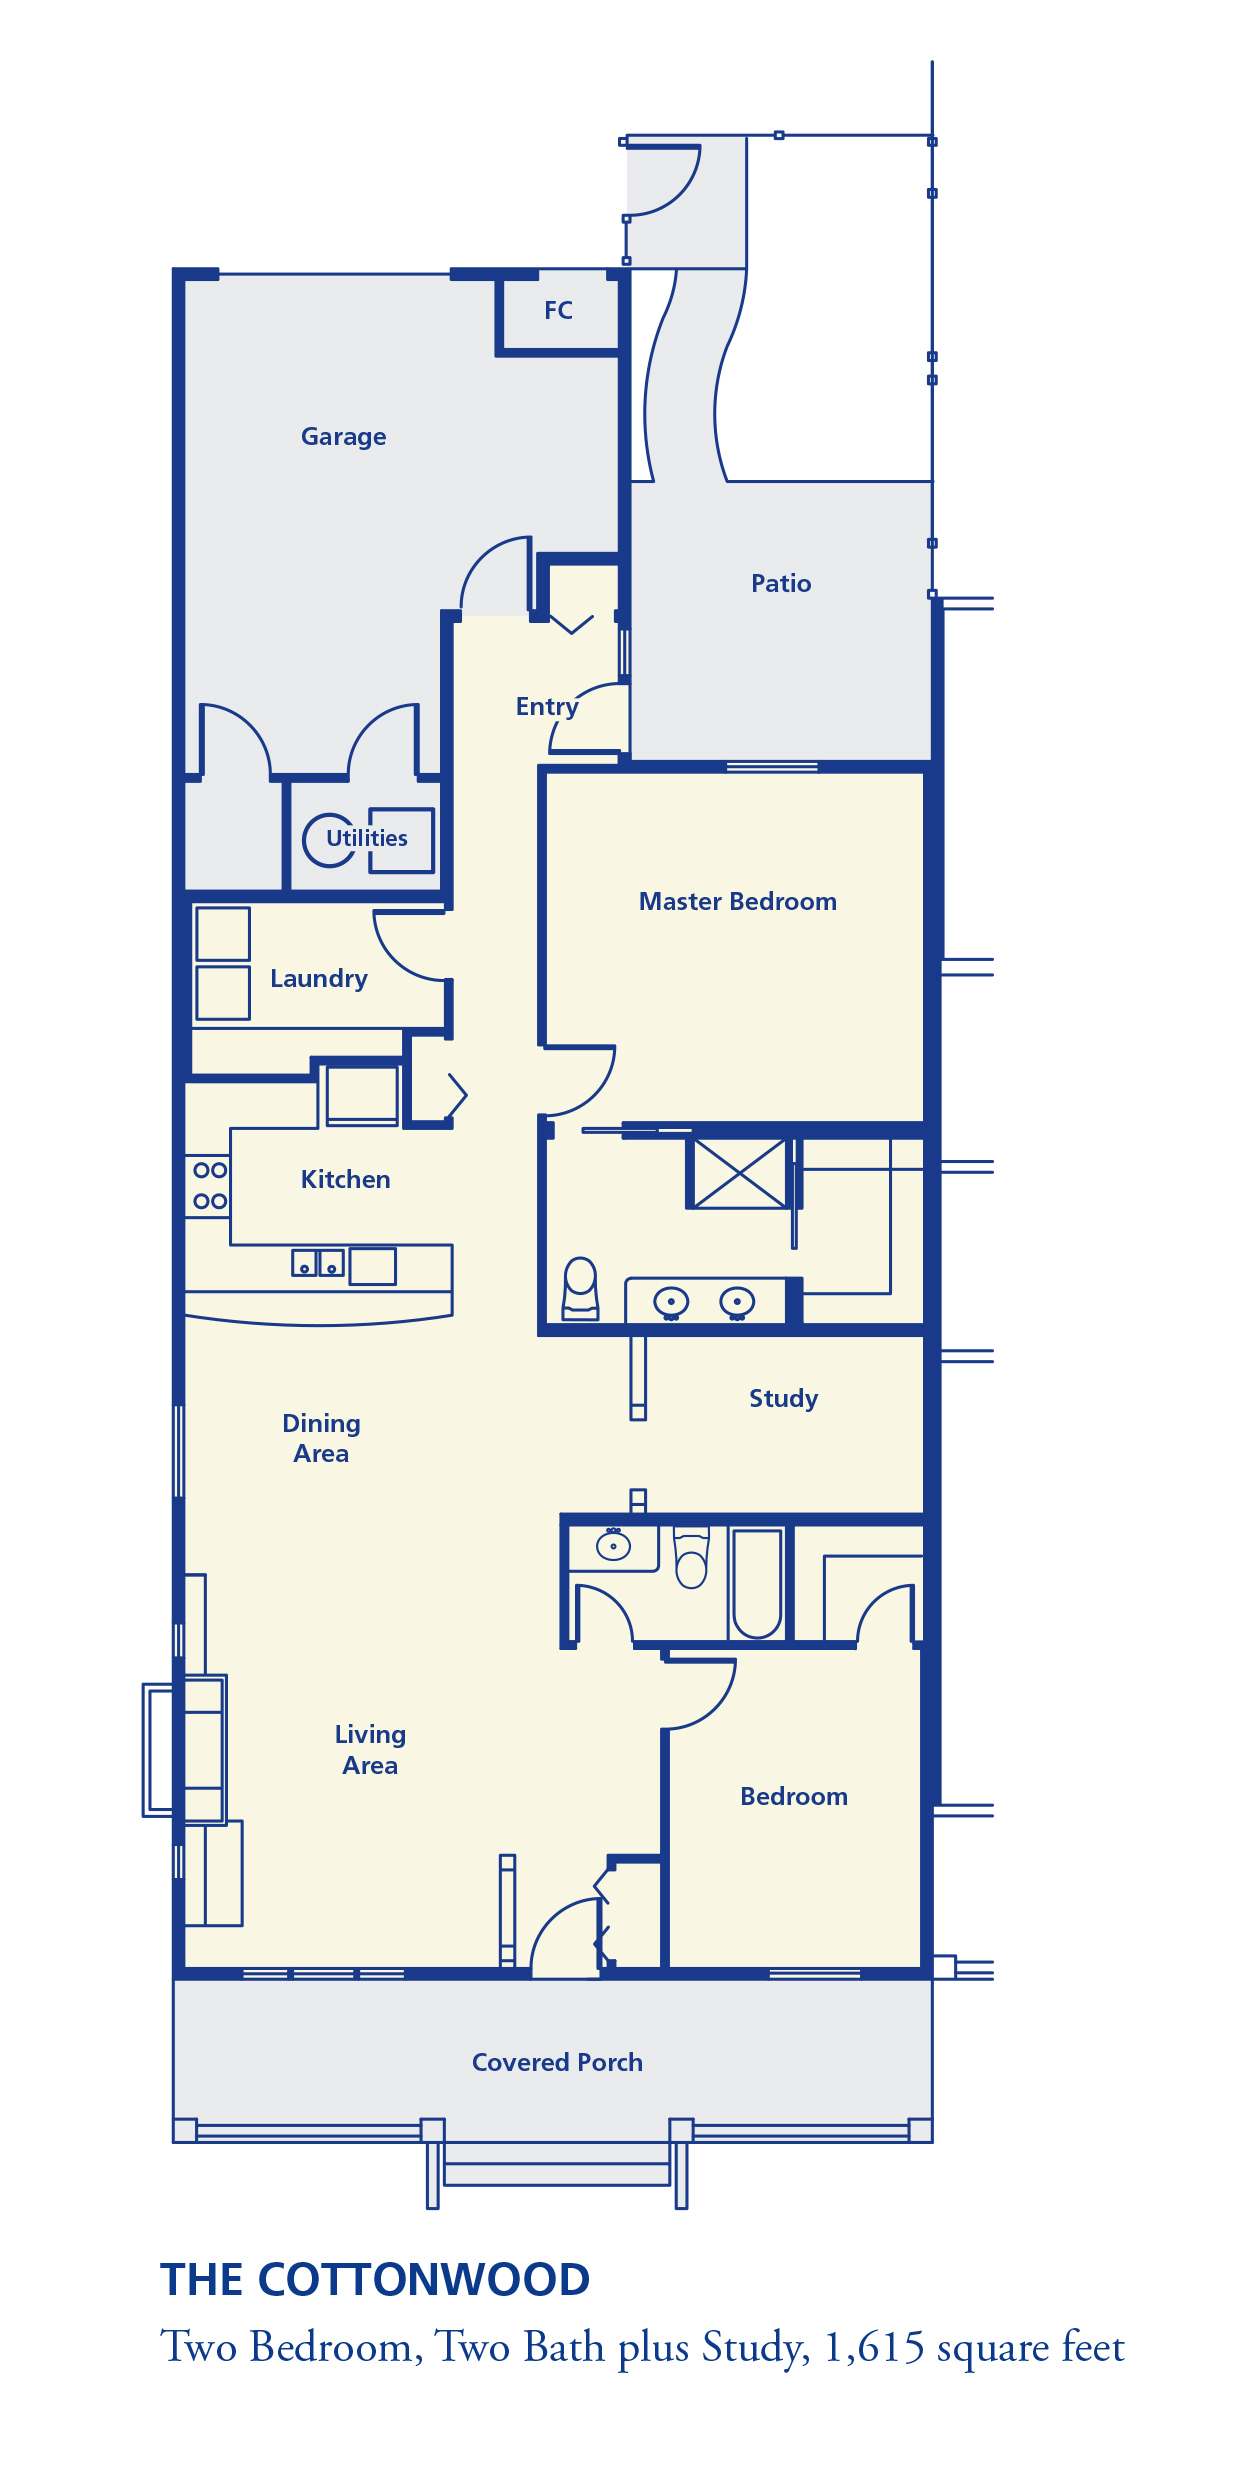 The Cottonwood Two bedroom two bath 1600+ square feet senior independent retirement residence living Denver